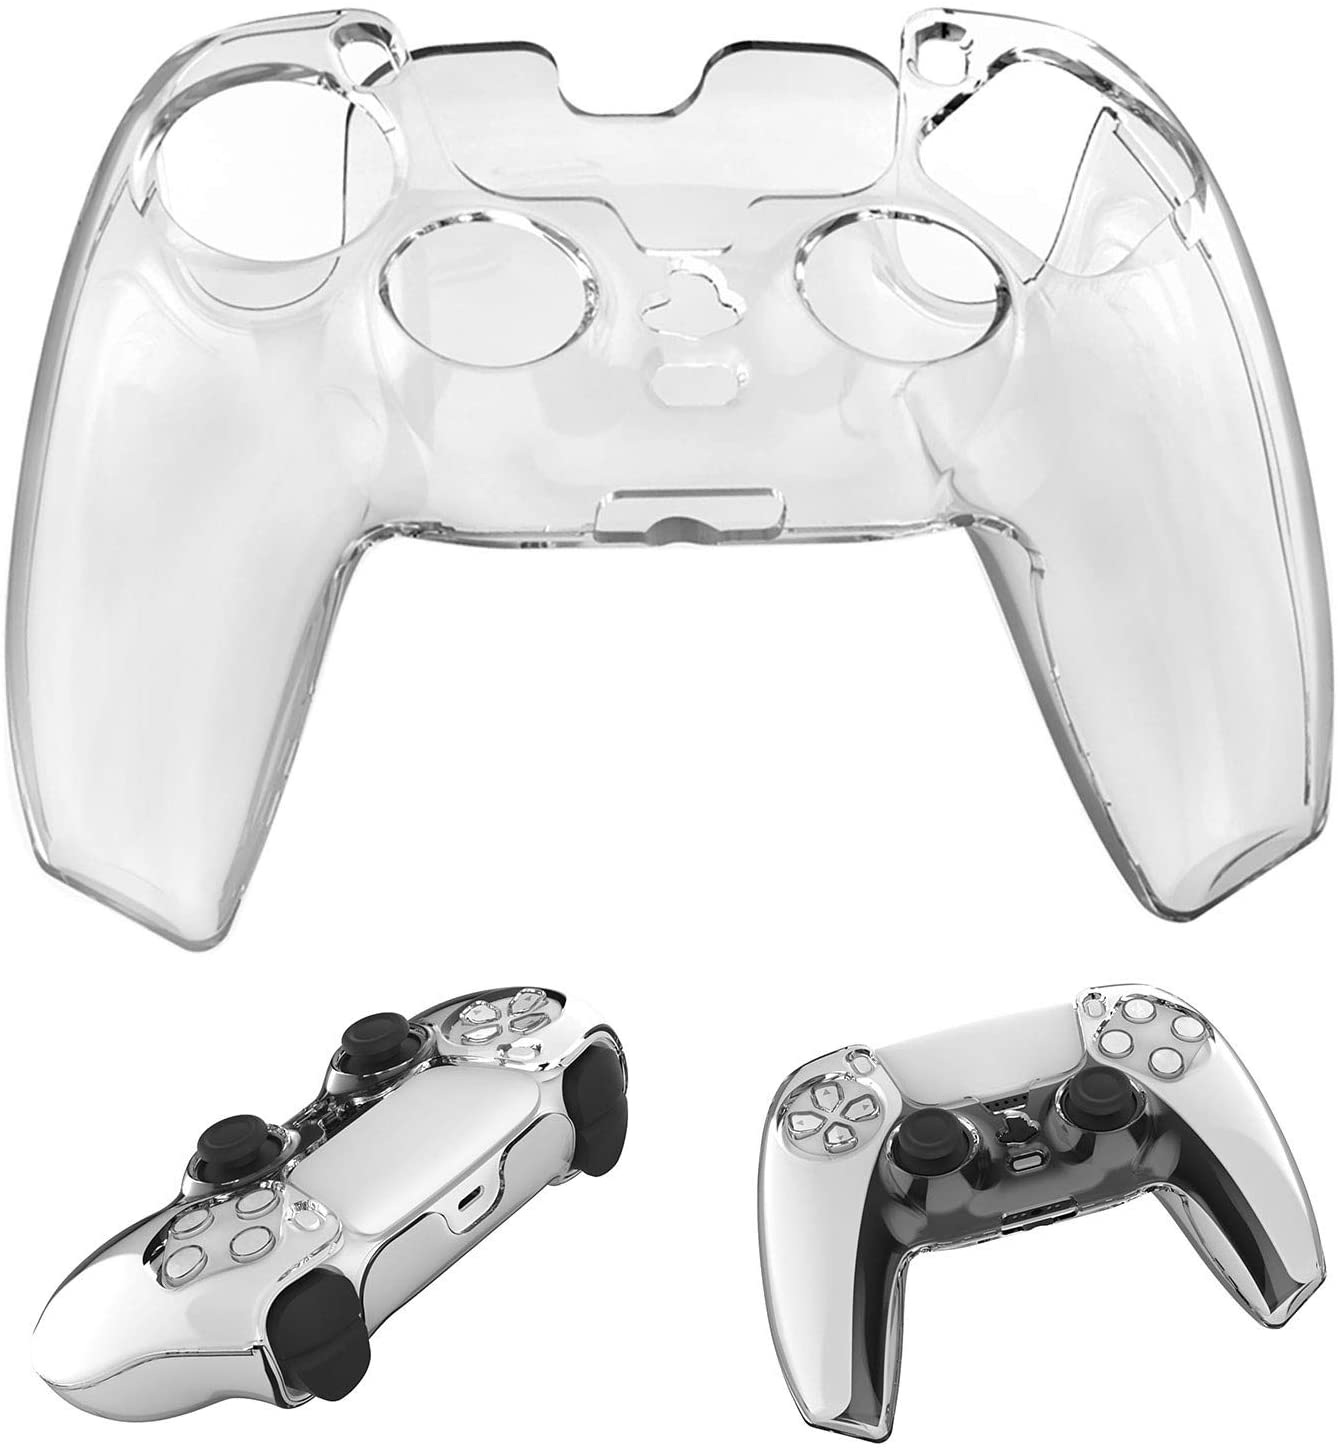 G/N PS5 Silicone Case Cover for PS5 Wireless Controller, Transparent PC Soft Case Skin Grip Cover for Playstation 5 Controller (Clear)